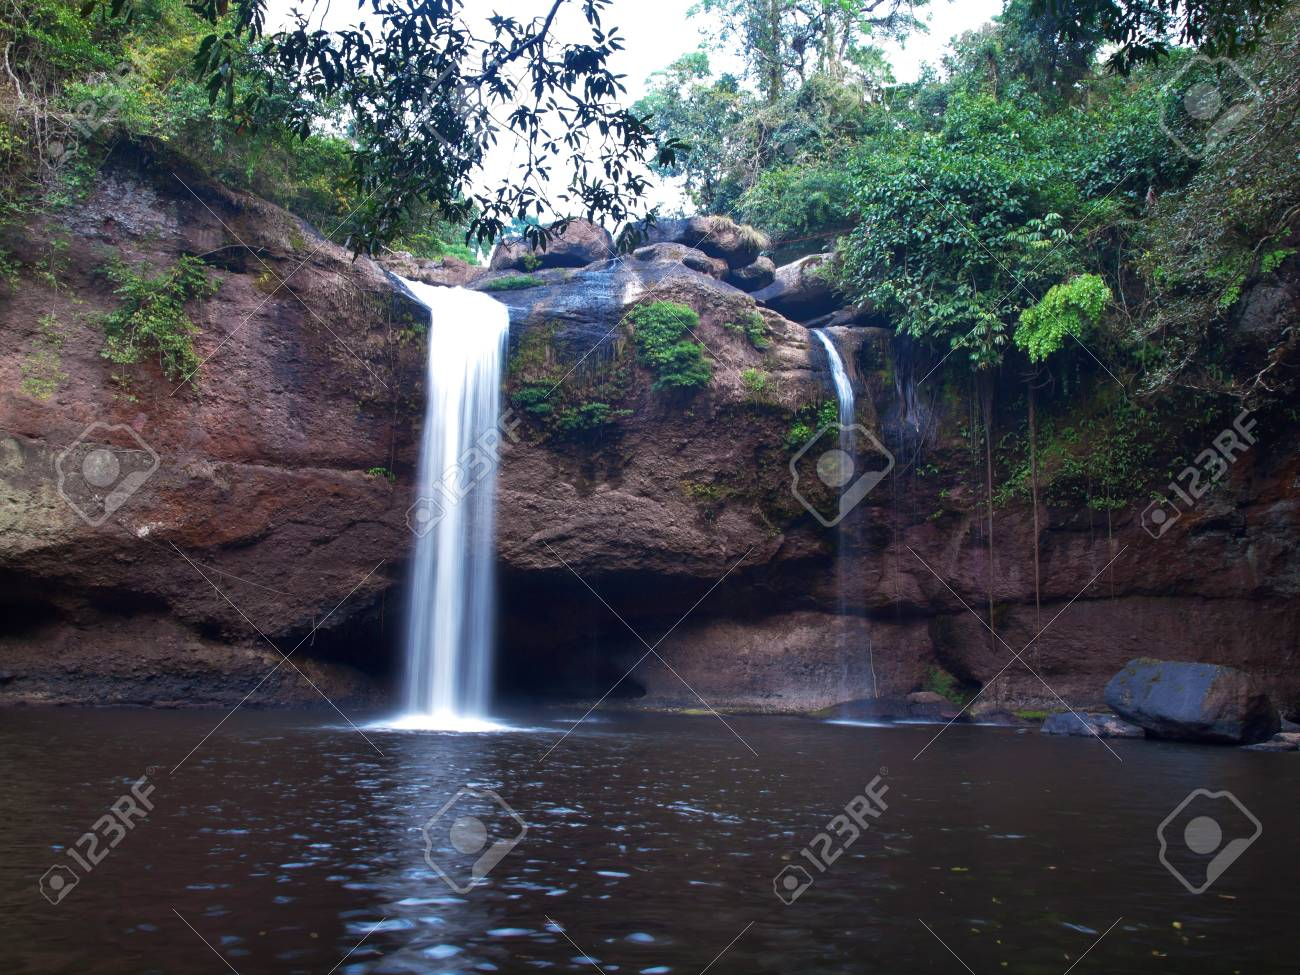 Haew Suwat Waterfall, Khao Yai National Park, Nakhon Nayok, Thailand  This national park. Stock Photo - 17983547